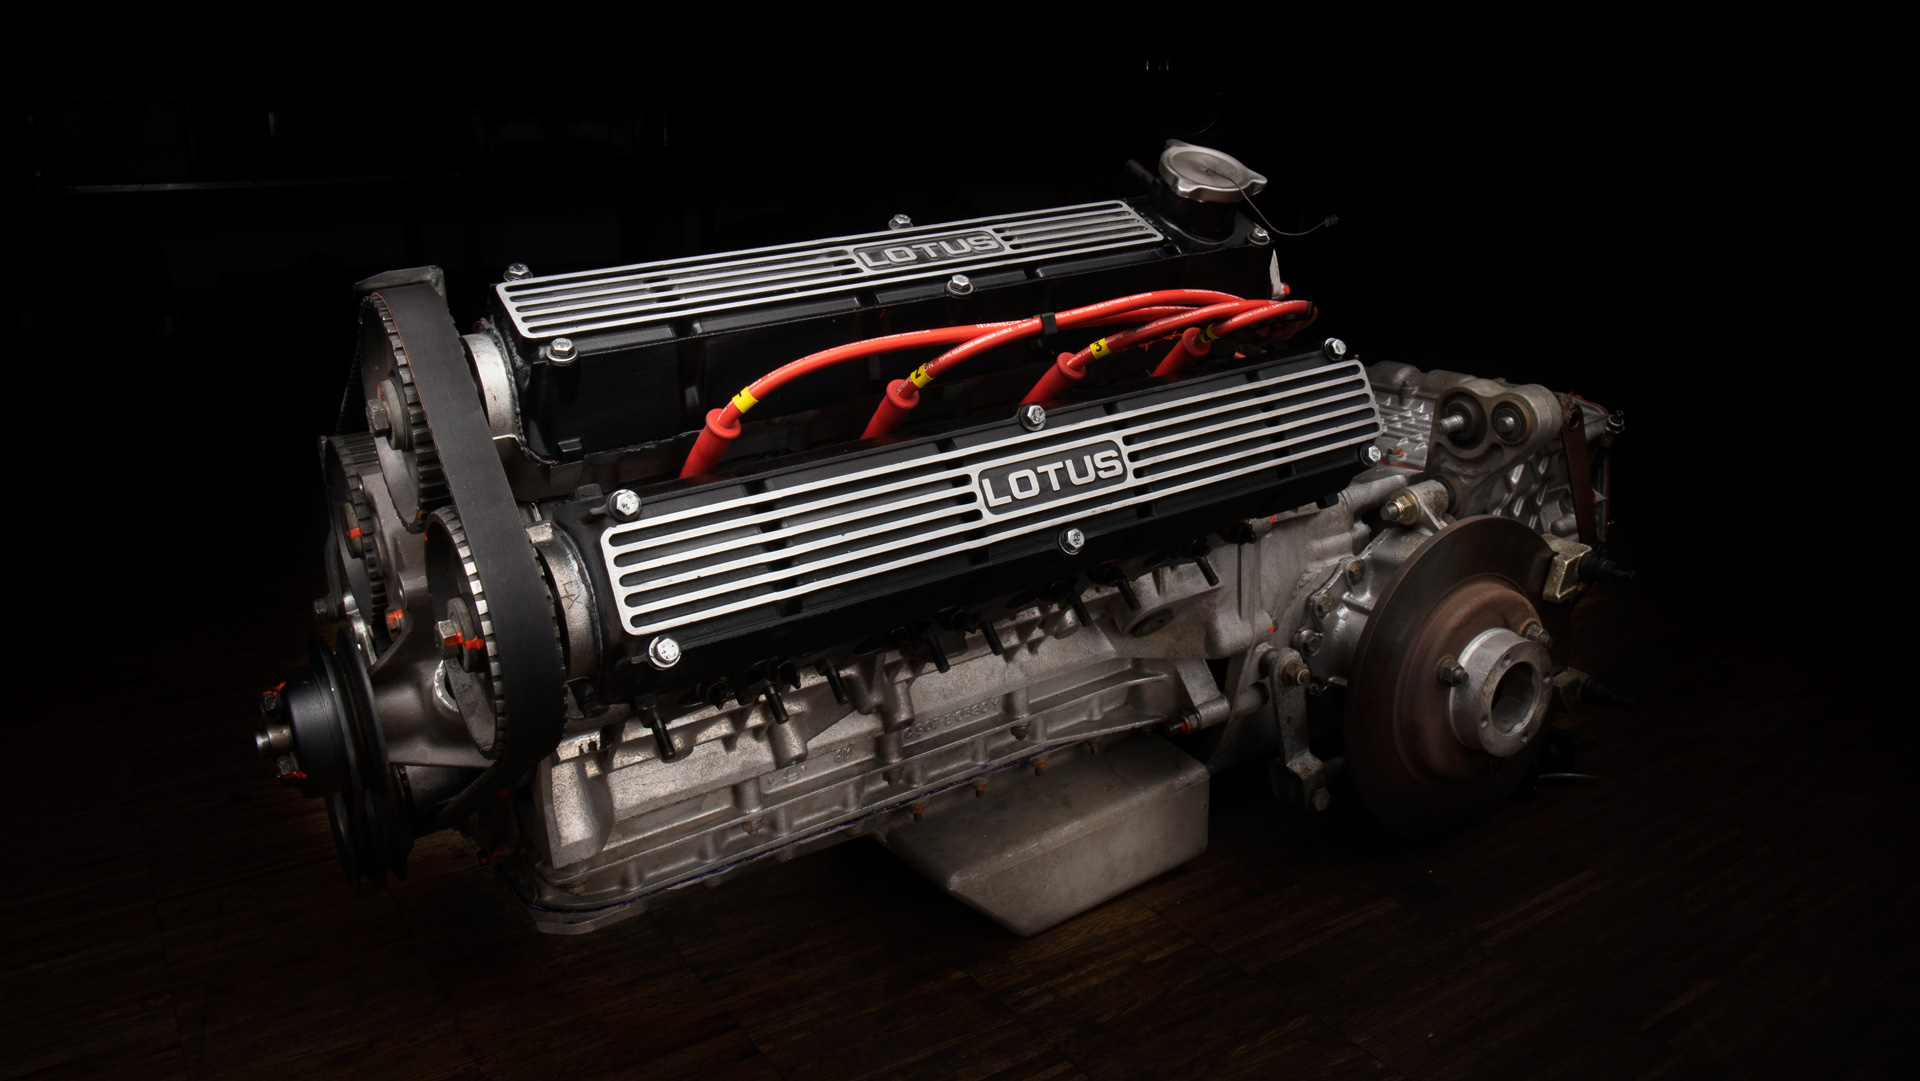 Lotus Esprit S1 Engine and Gearbox